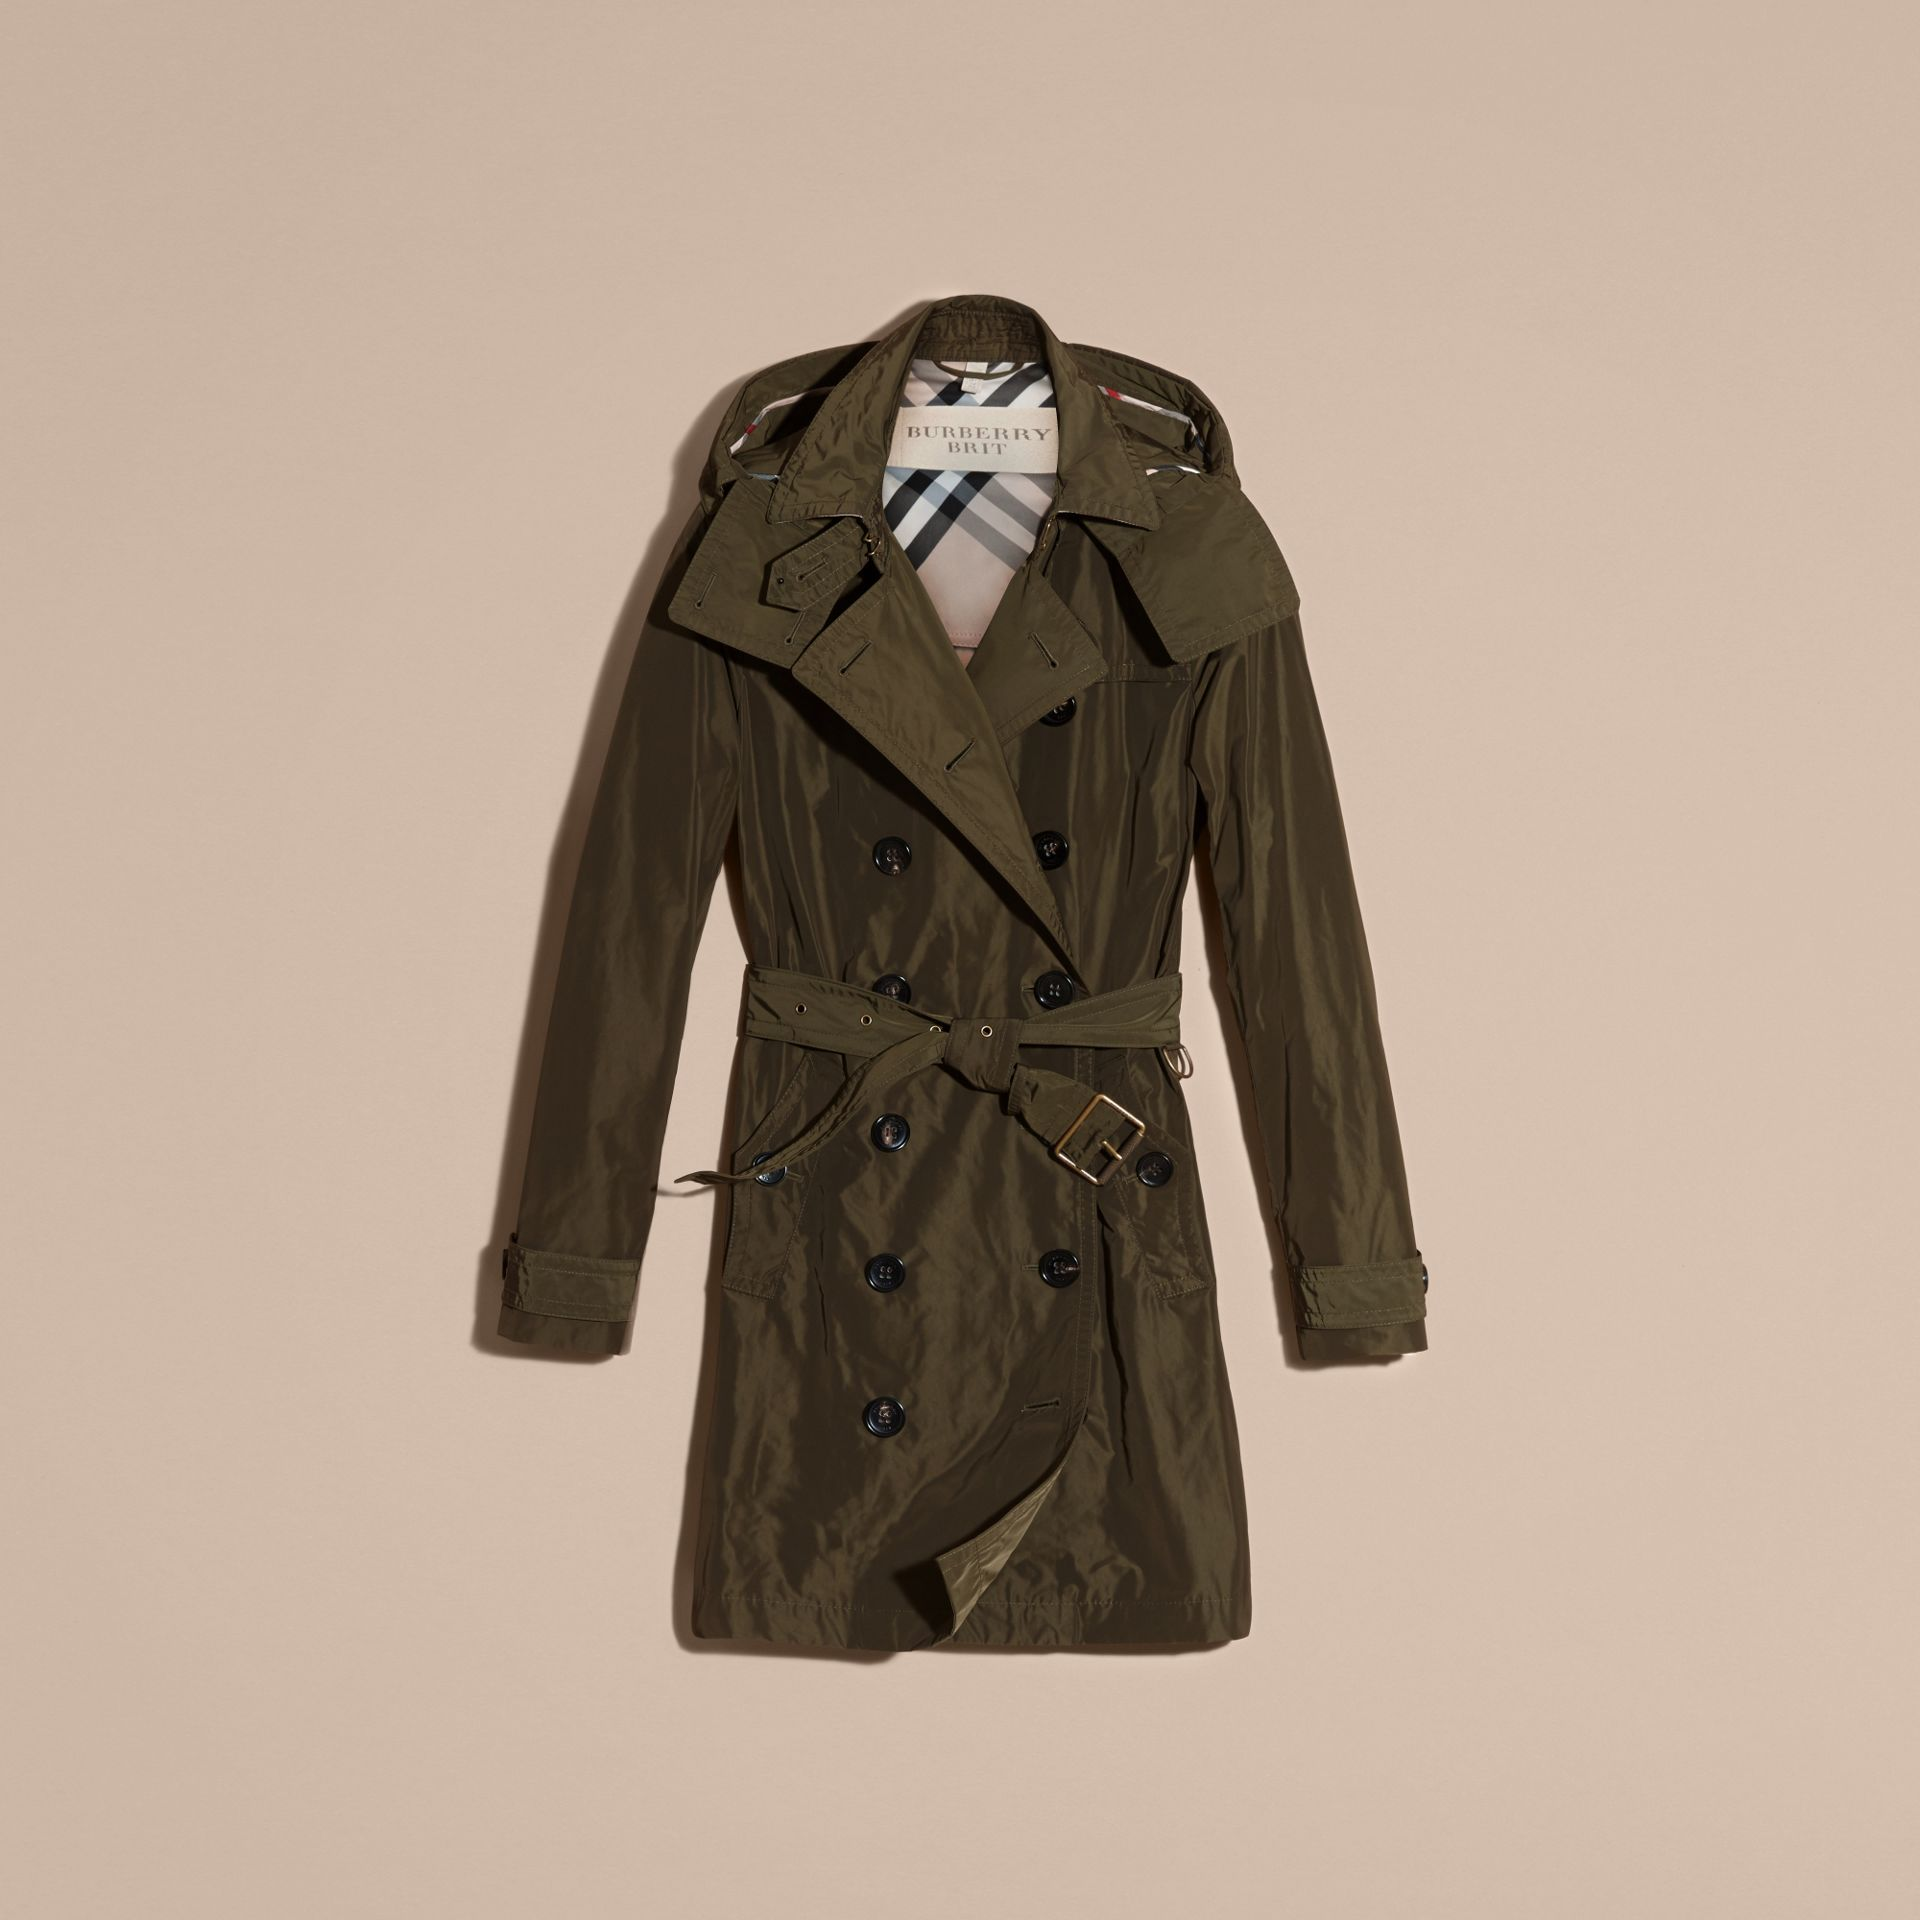 Taffeta Trench Coat with Detachable Hood in Dark Olive - Women | Burberry - gallery image 3